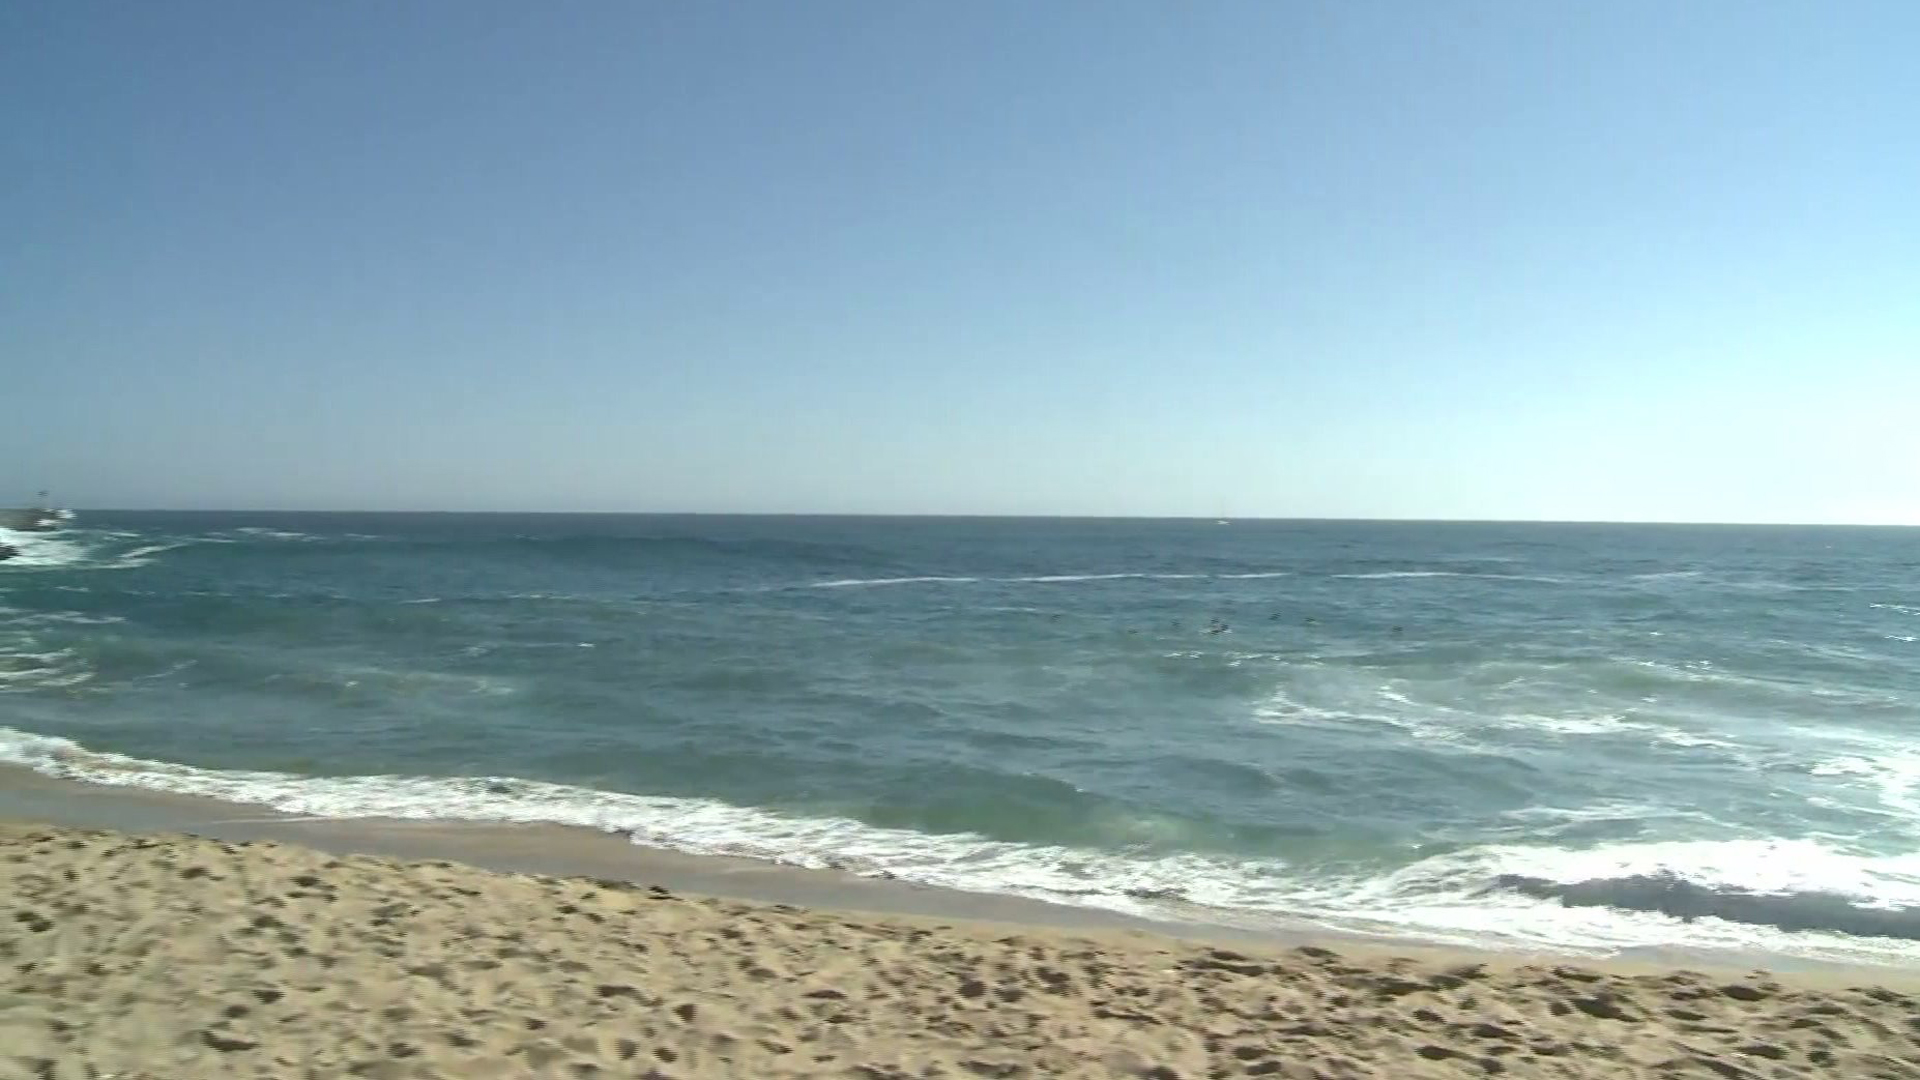 The ocean off of Newport Beach is seen in a file photo. (Credit: KTLA)